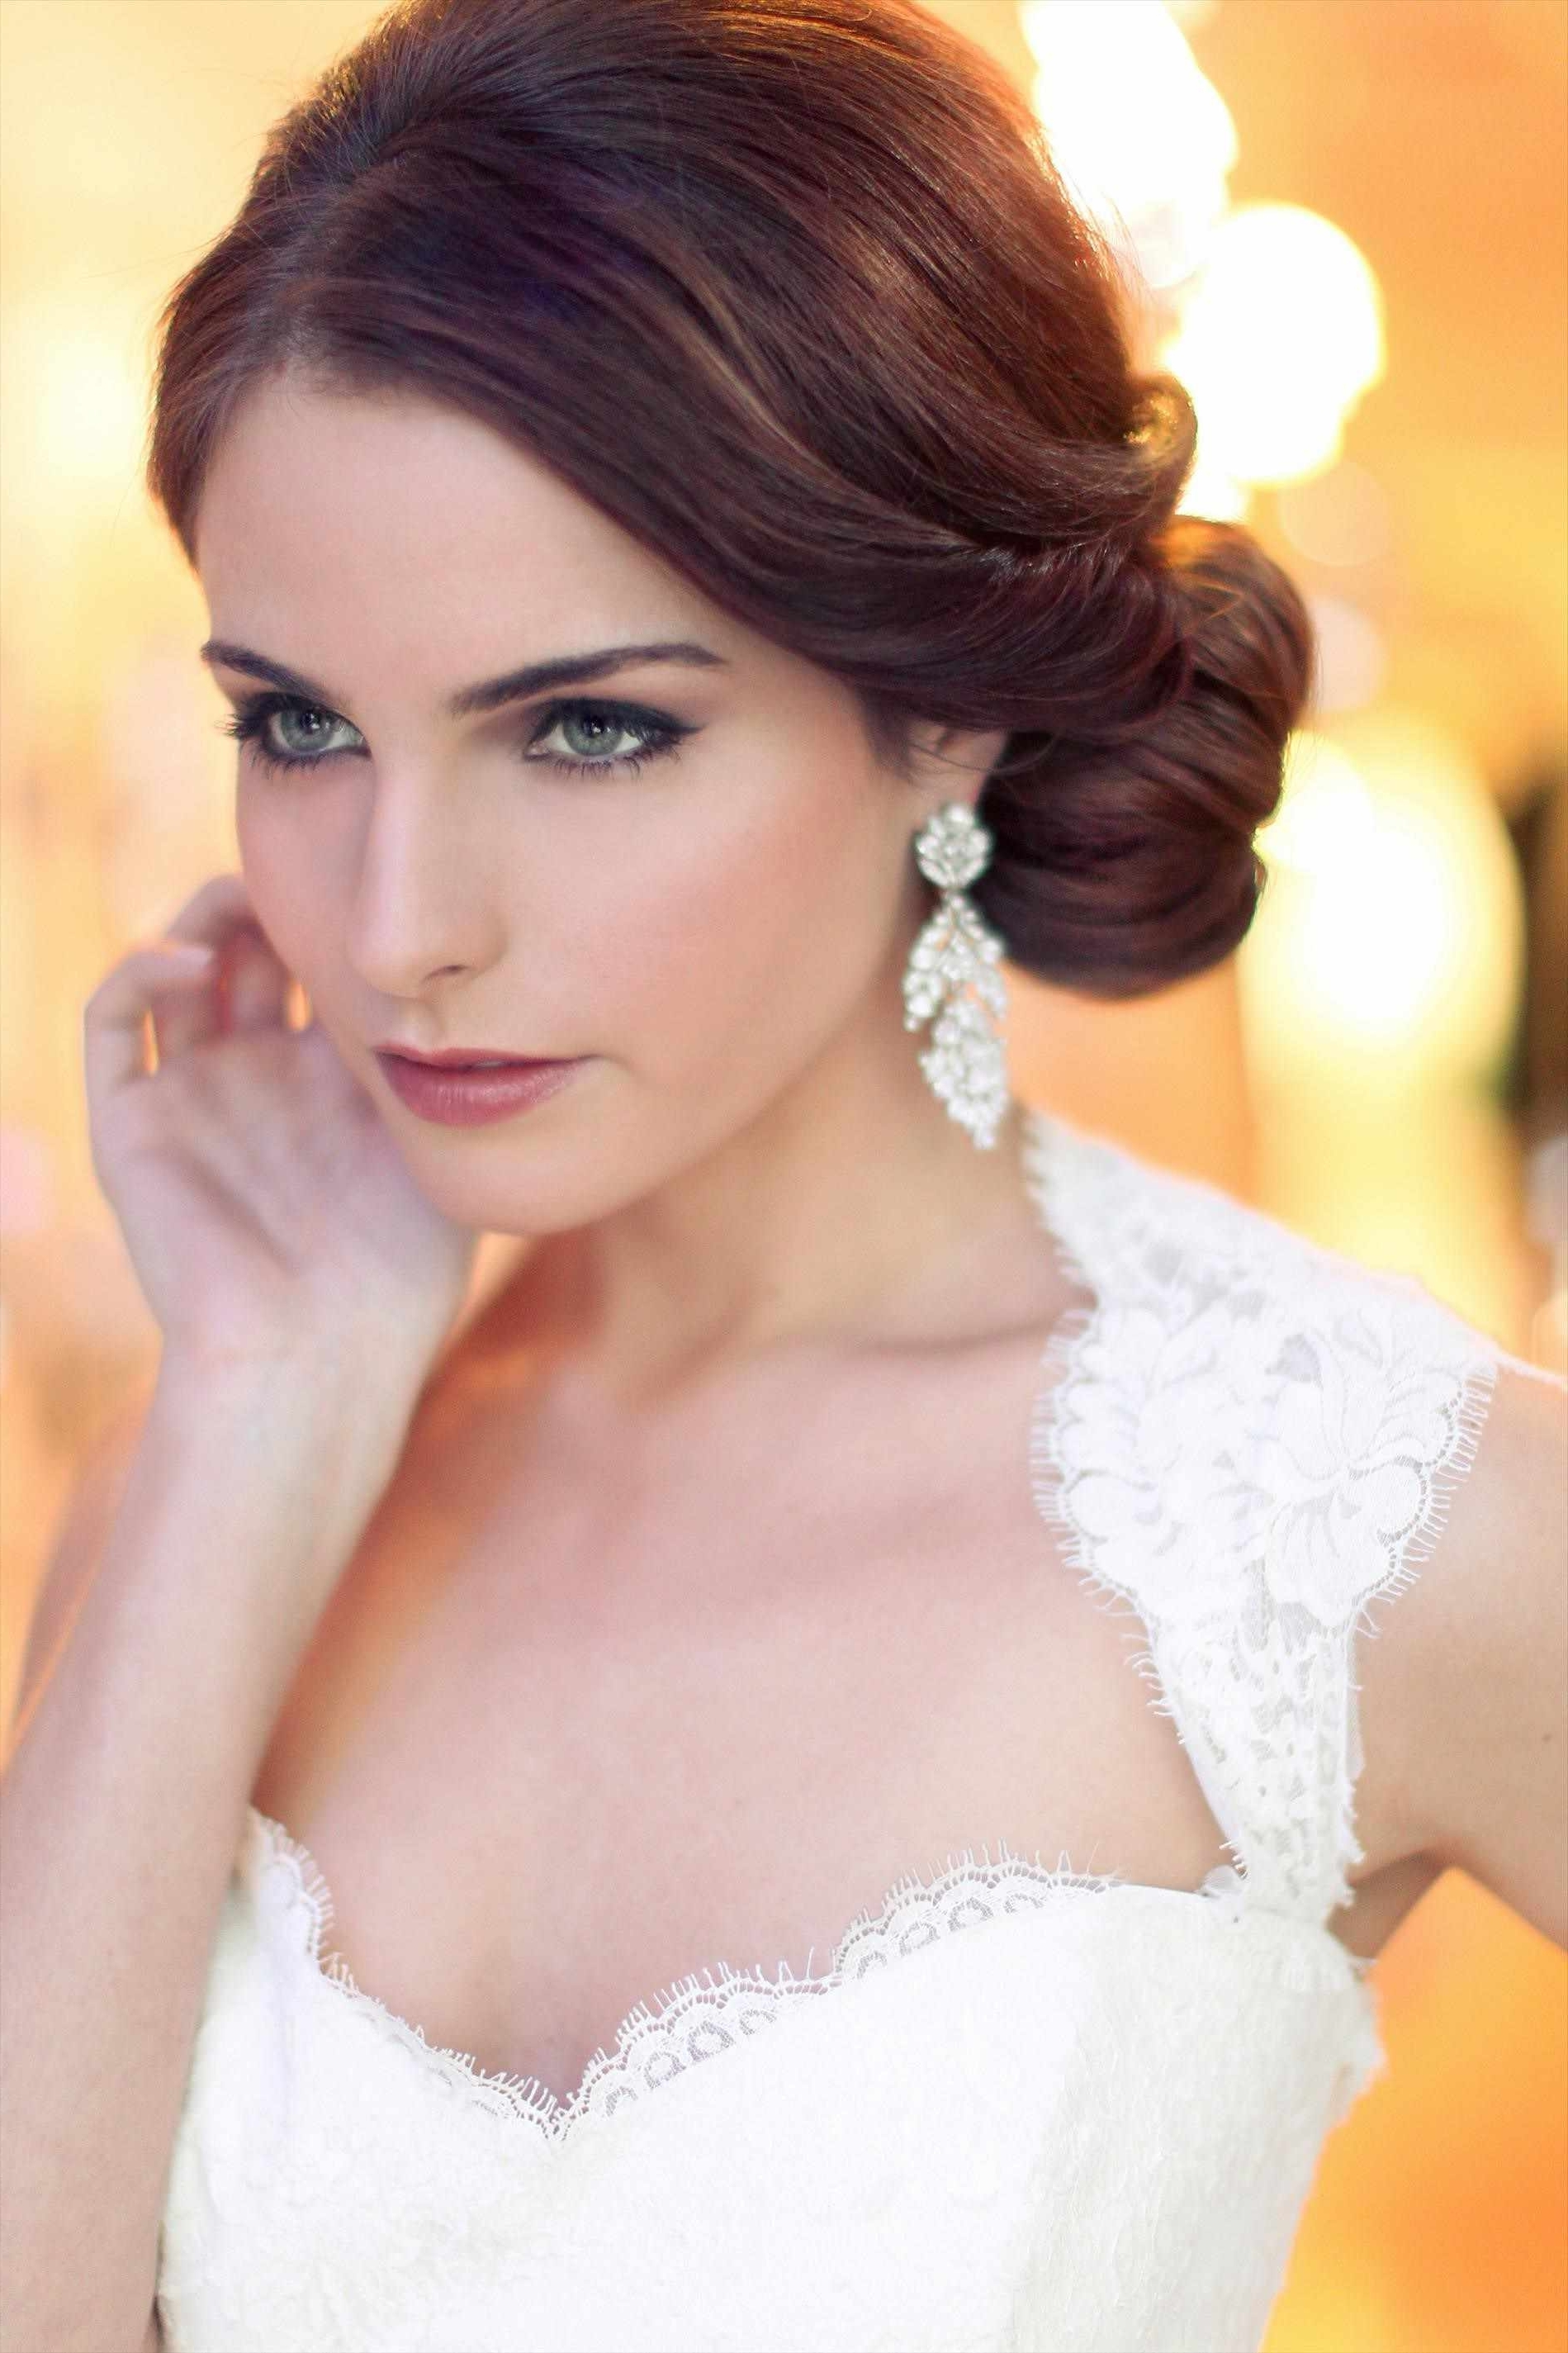 Brilliant Ideas Of Bridal Hairstyles For Round Faces Excellent For Most Recent Wedding Hairstyles For Short Hair And Round Face (View 5 of 15)